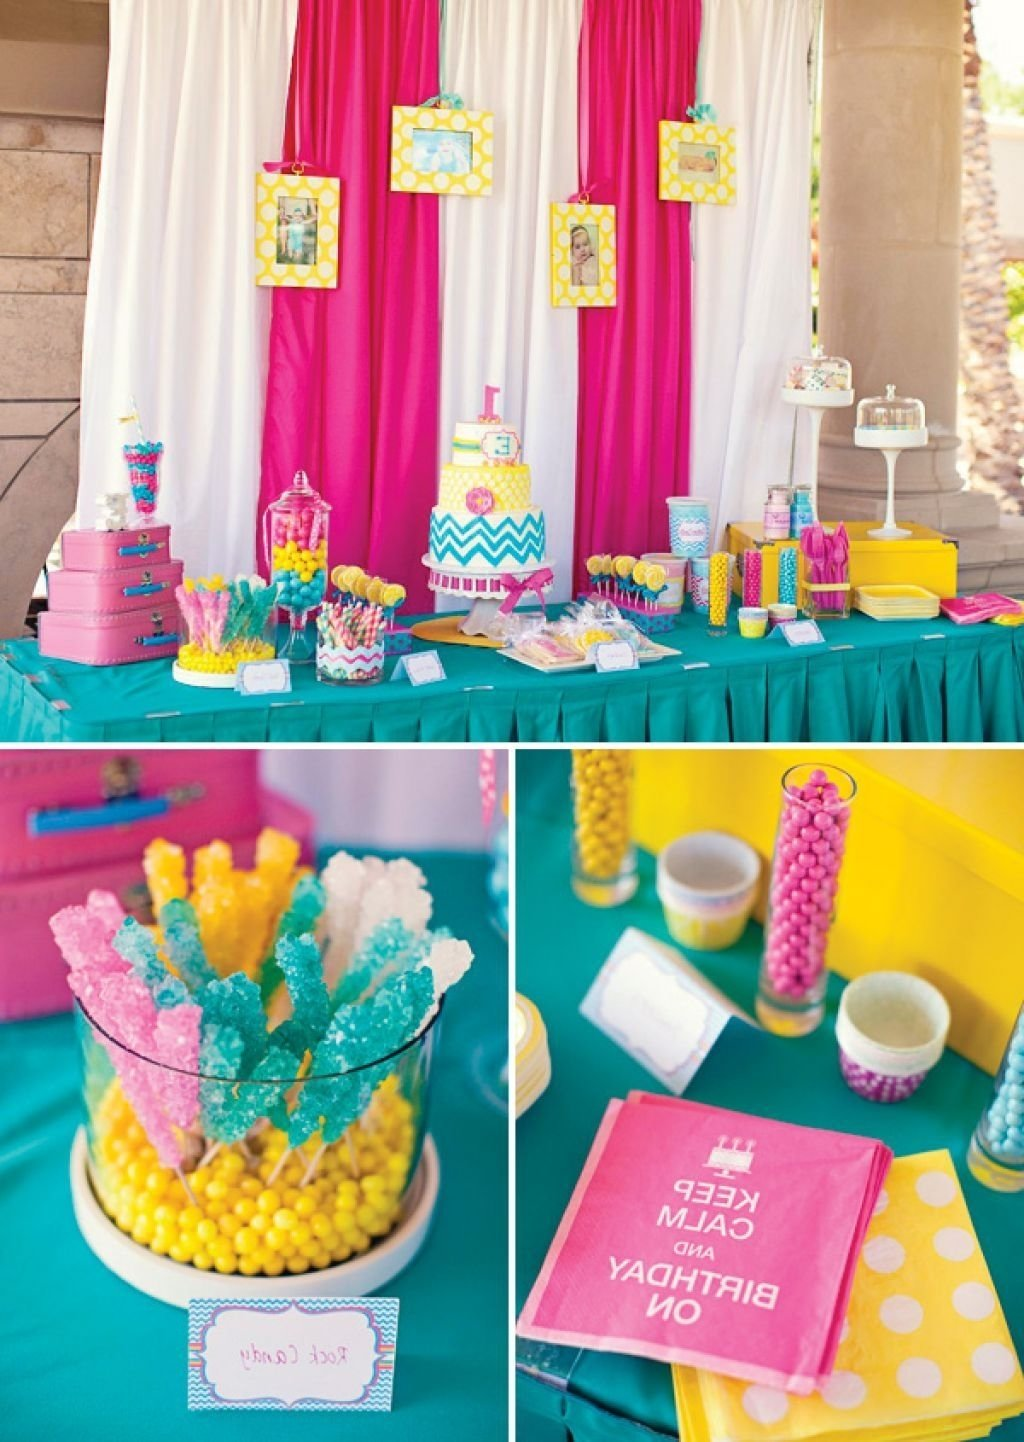 10 Unique 2 Year Old Party Ideas outdoor party decorations google search madeline pinterest 43 2021